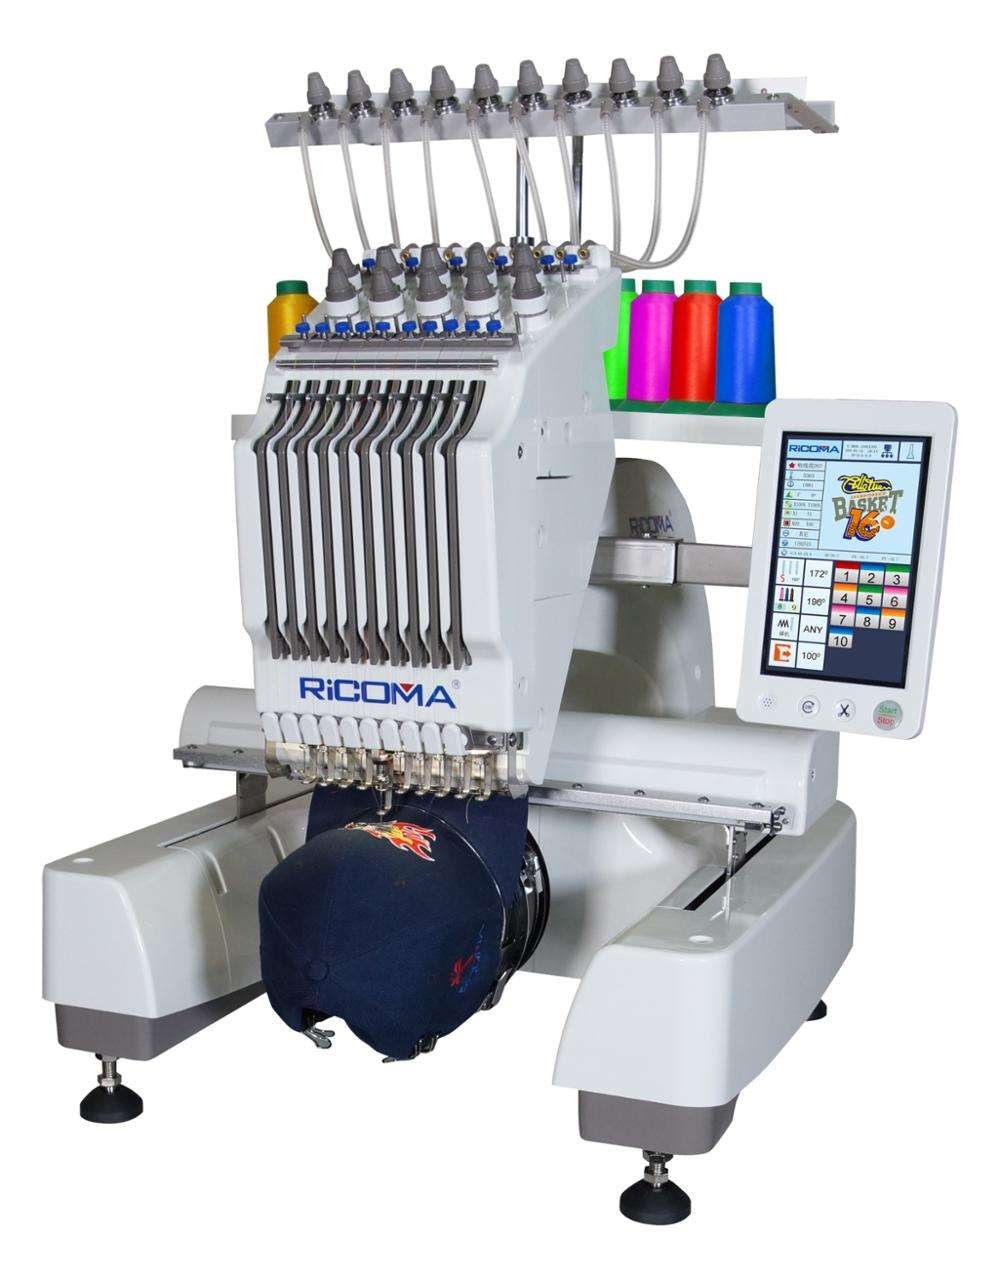 RiCOMA 10 Needle Home Application Single Head Computerized Embroidery Machine